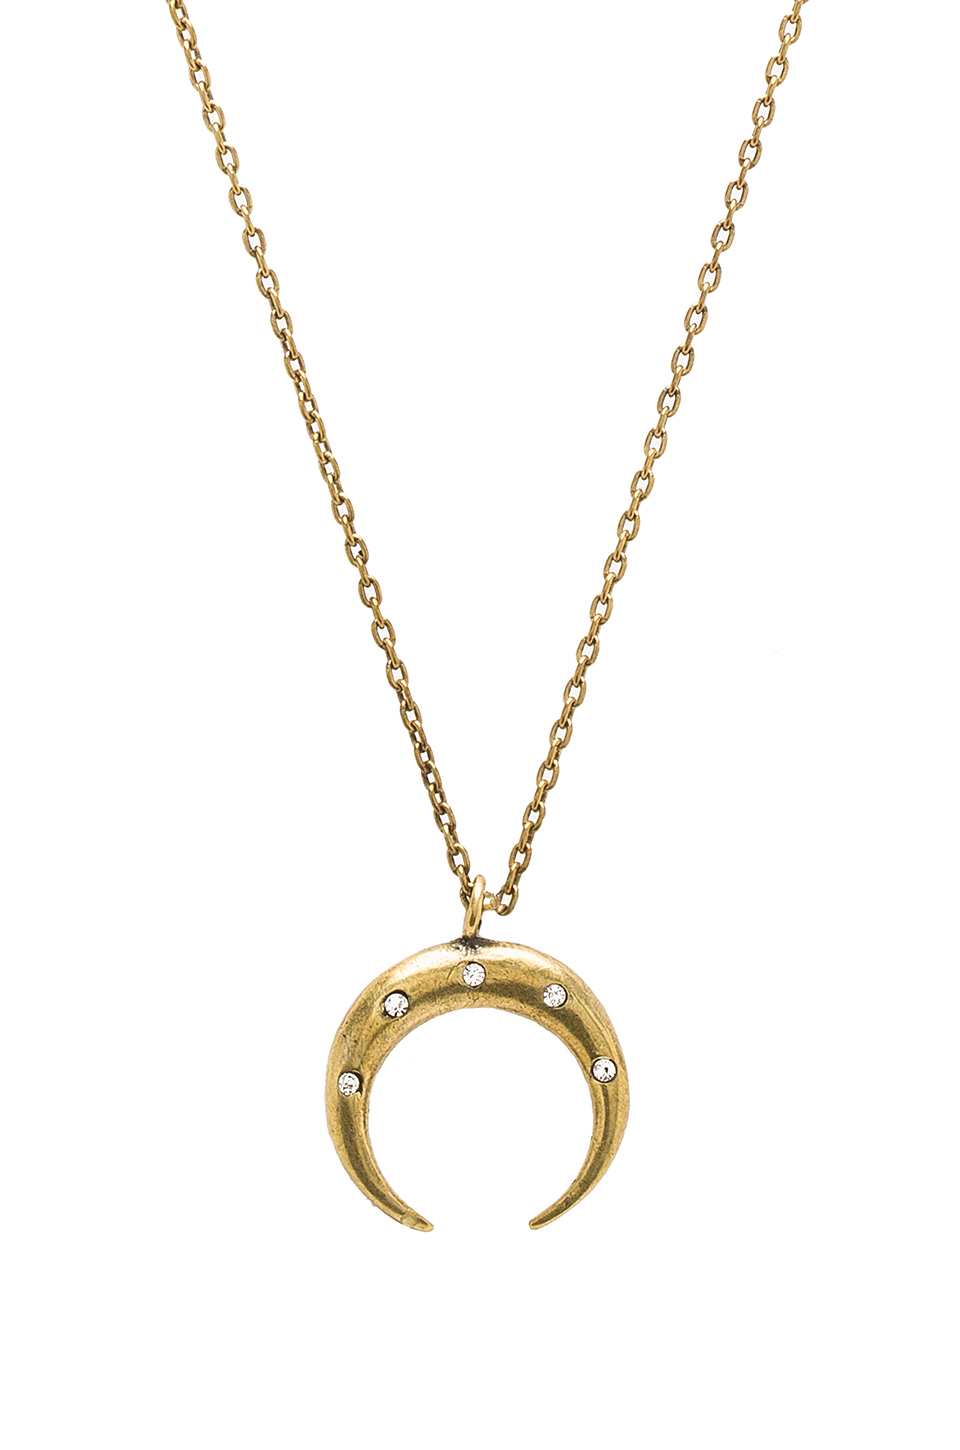 Lyst - Torchlight Diamond Crescent Moon Necklace in Metallic